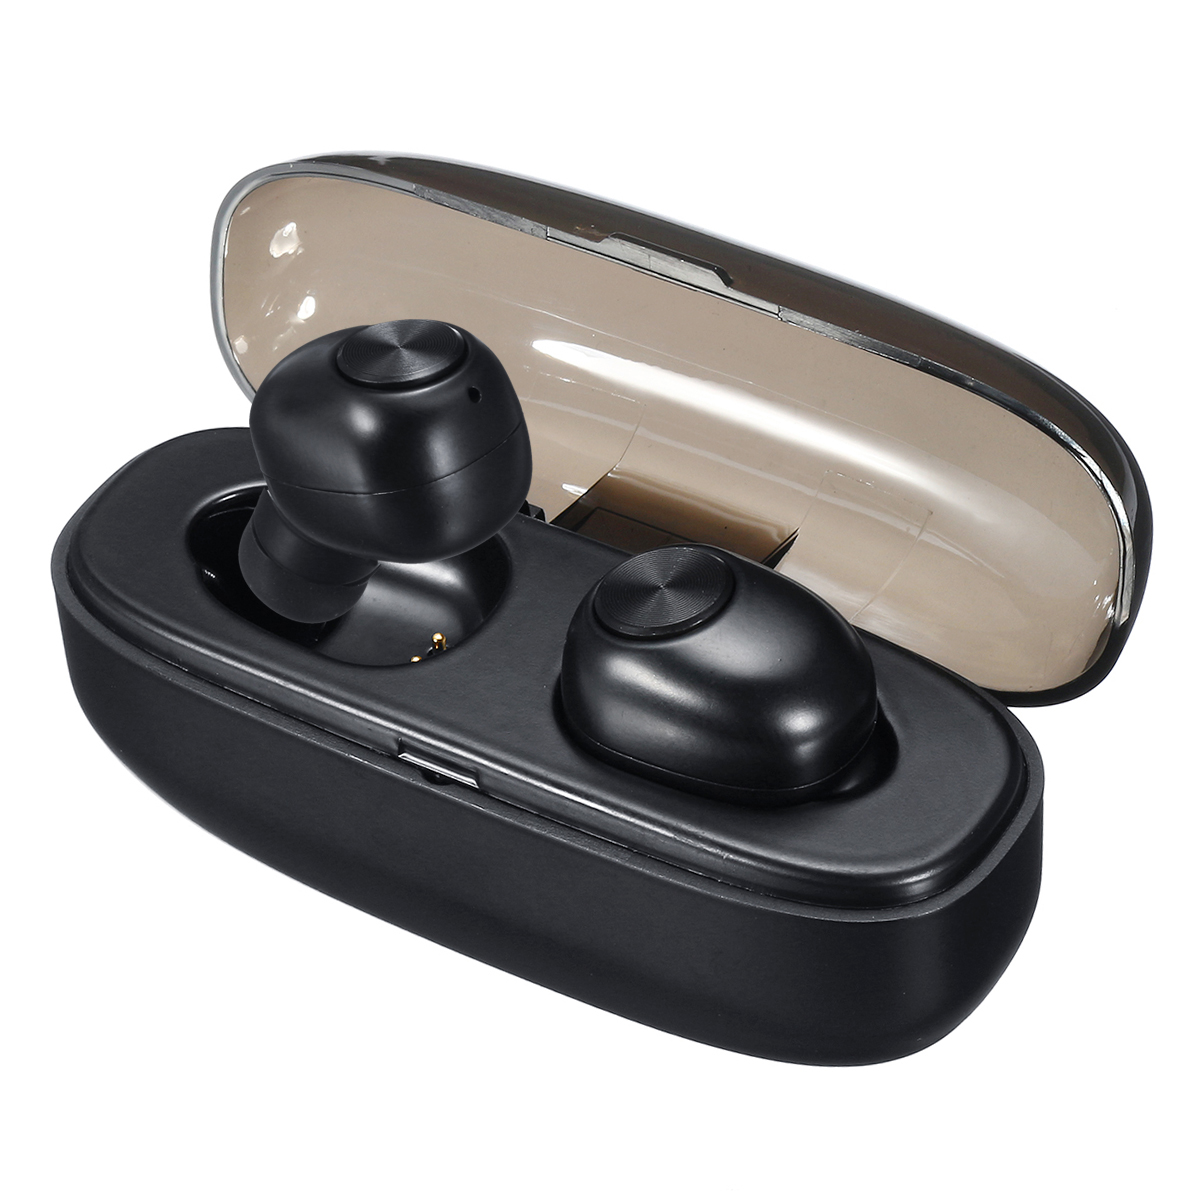 [bluetooth 5.0] TWS Wireless Earbuds Noise Cancelling Bilateral Calls IPX5 Waterproof Earphone with Charging Box